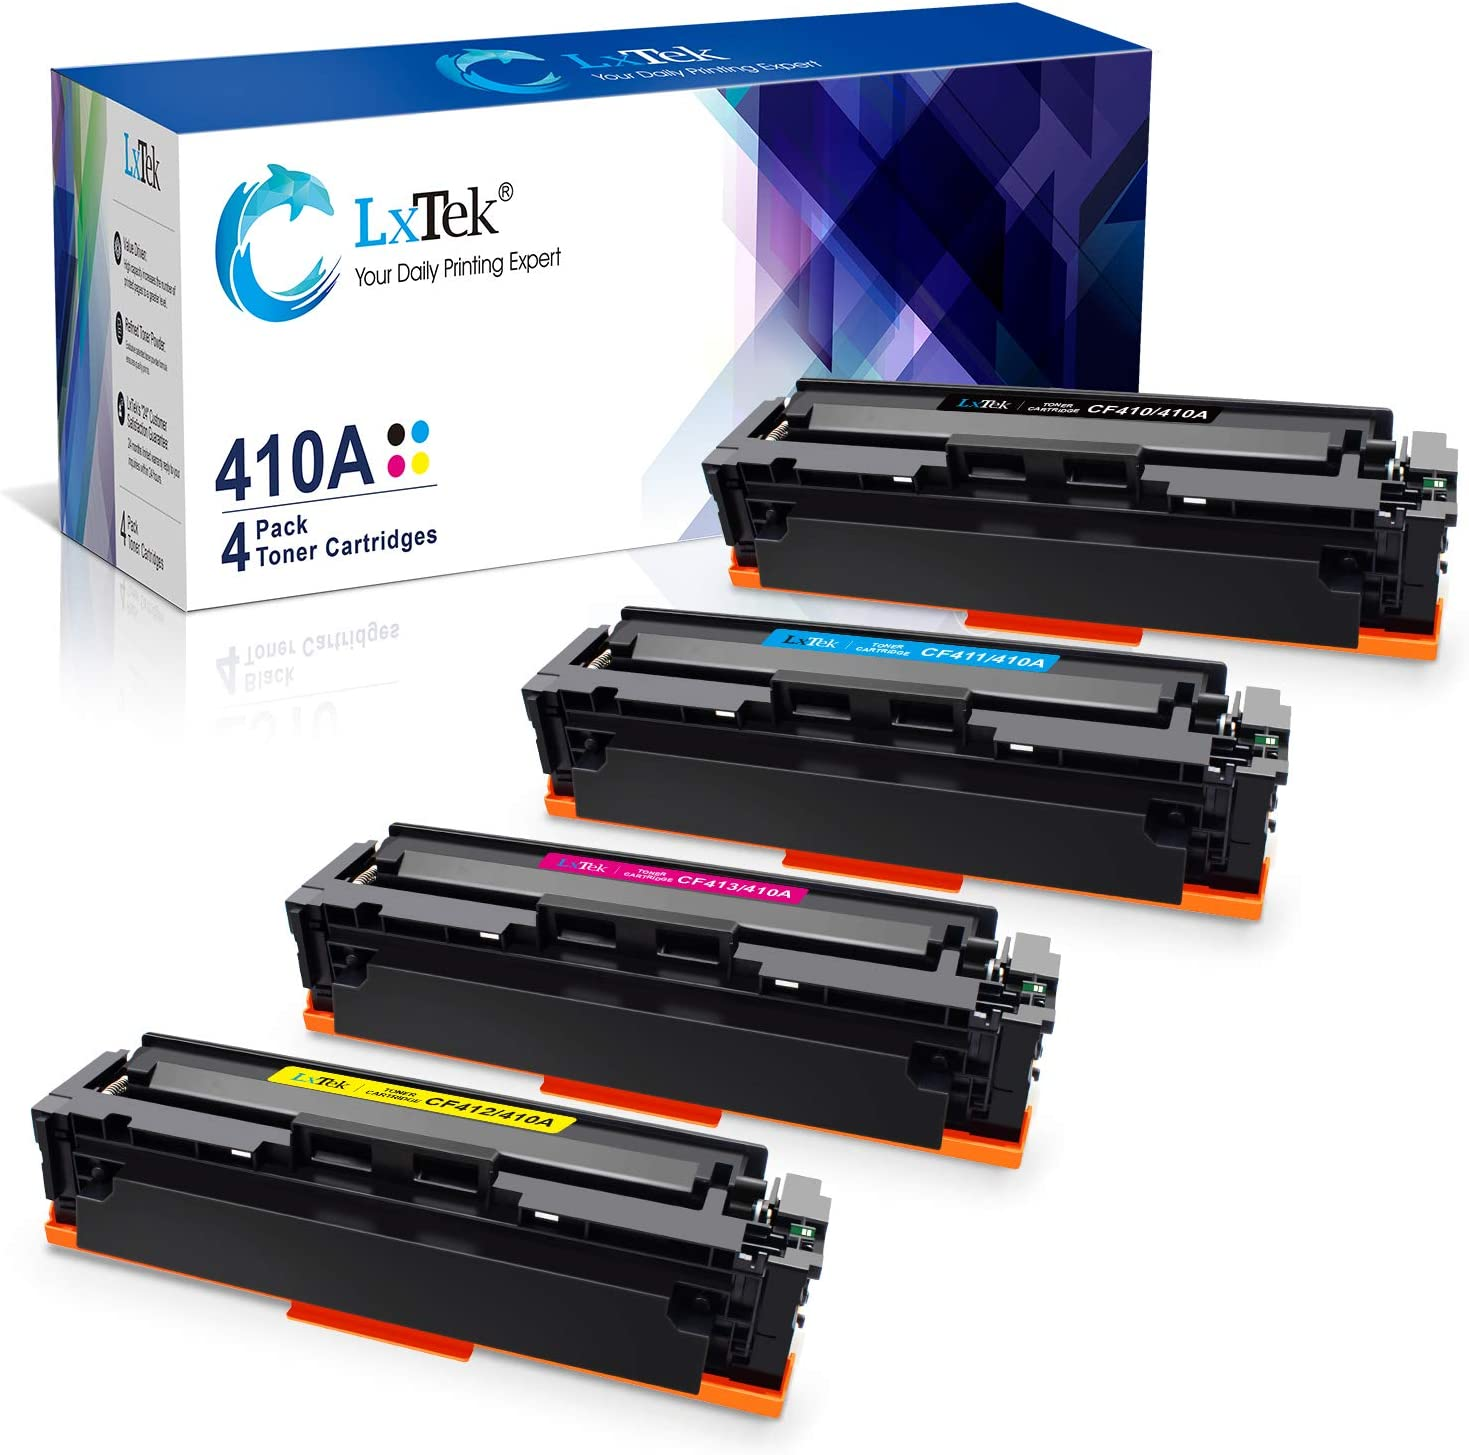 LxTek Compatible Toner Cartridge Replacement for HP 410A-CF410A-to use with Color Laserjet Pro MFP M477fdn-M477fnw-M477fdw-M452dn M452dw M452nw (Black,Cyan,Magenta,Yellow,4-Pack)